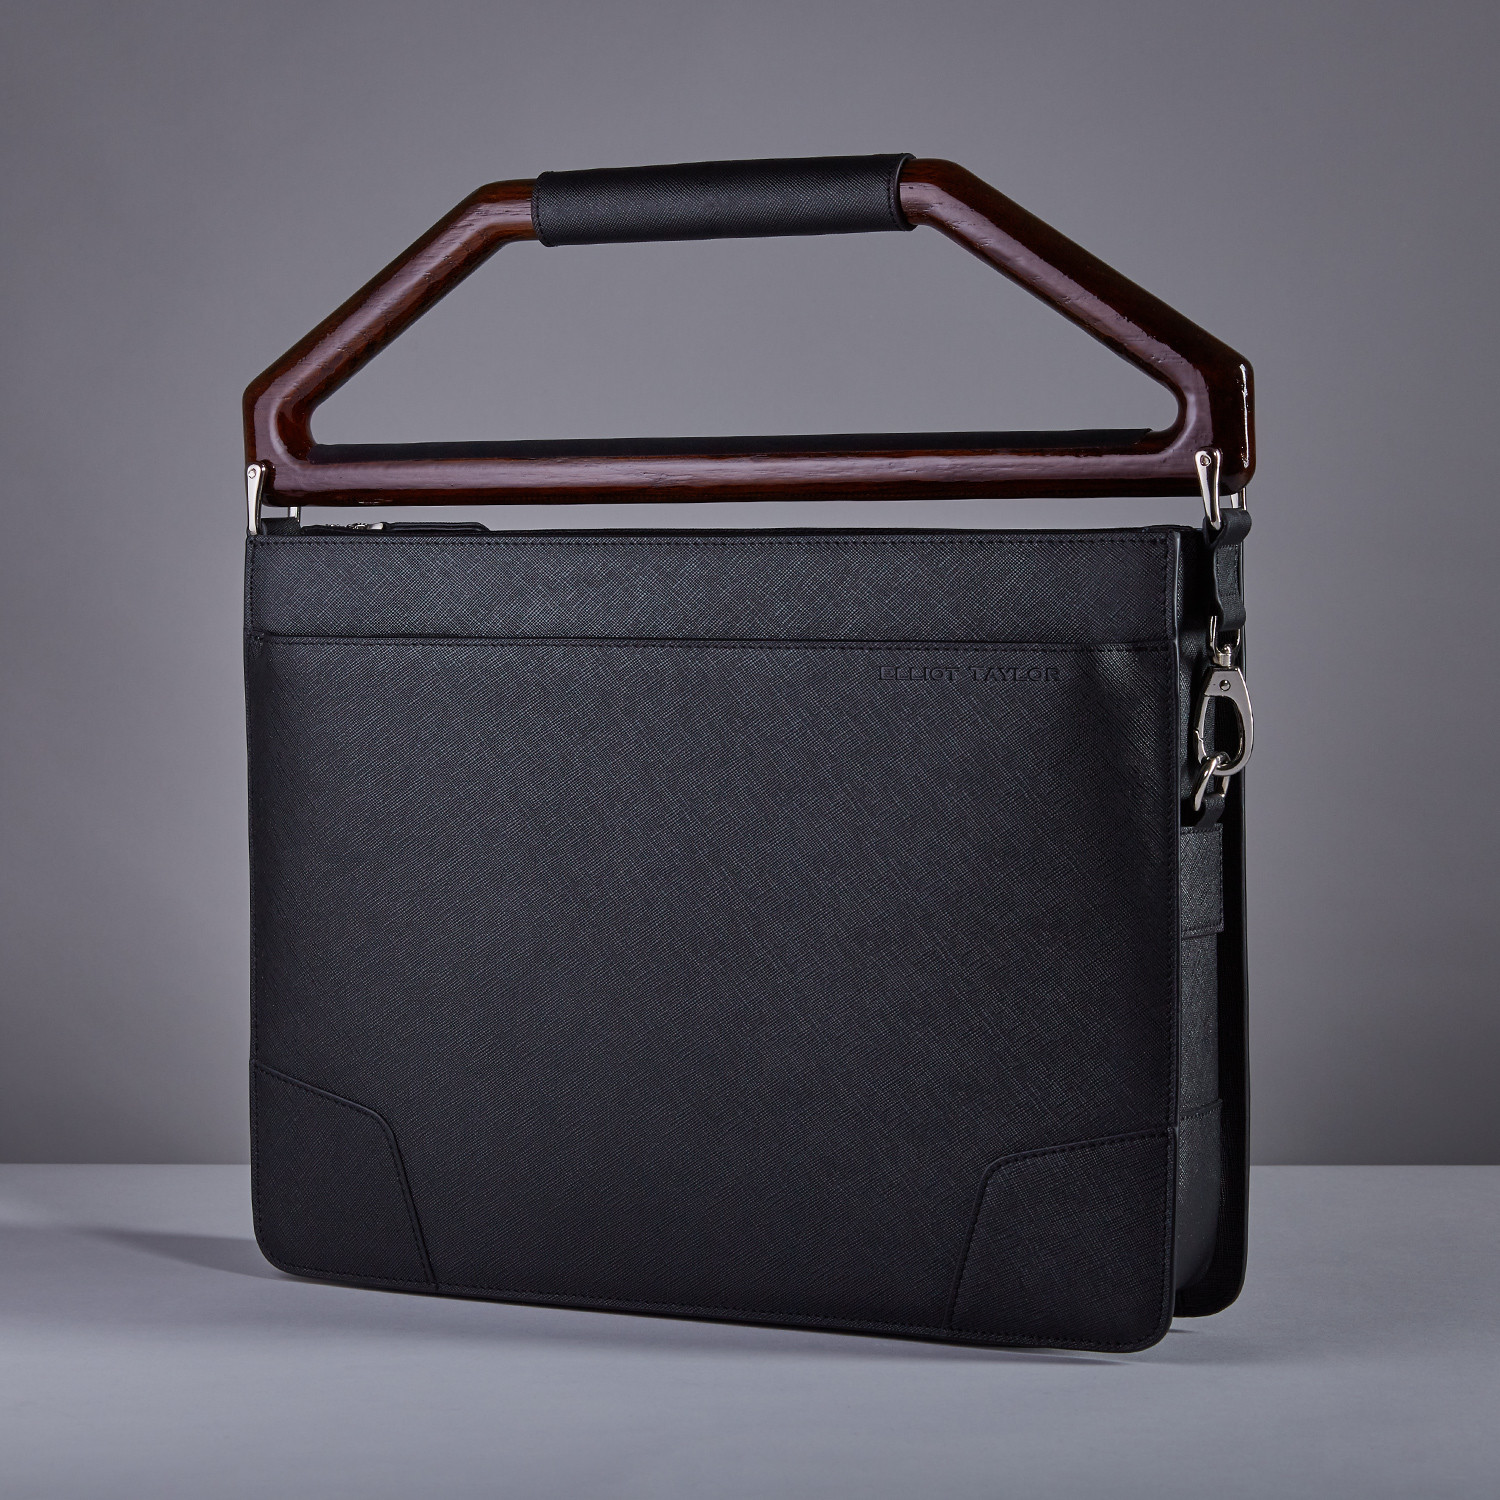 elliot taylor ny briefcase  hudson red handle  elliot taylor ny  - elliot taylor ny briefcase  hudson red handle